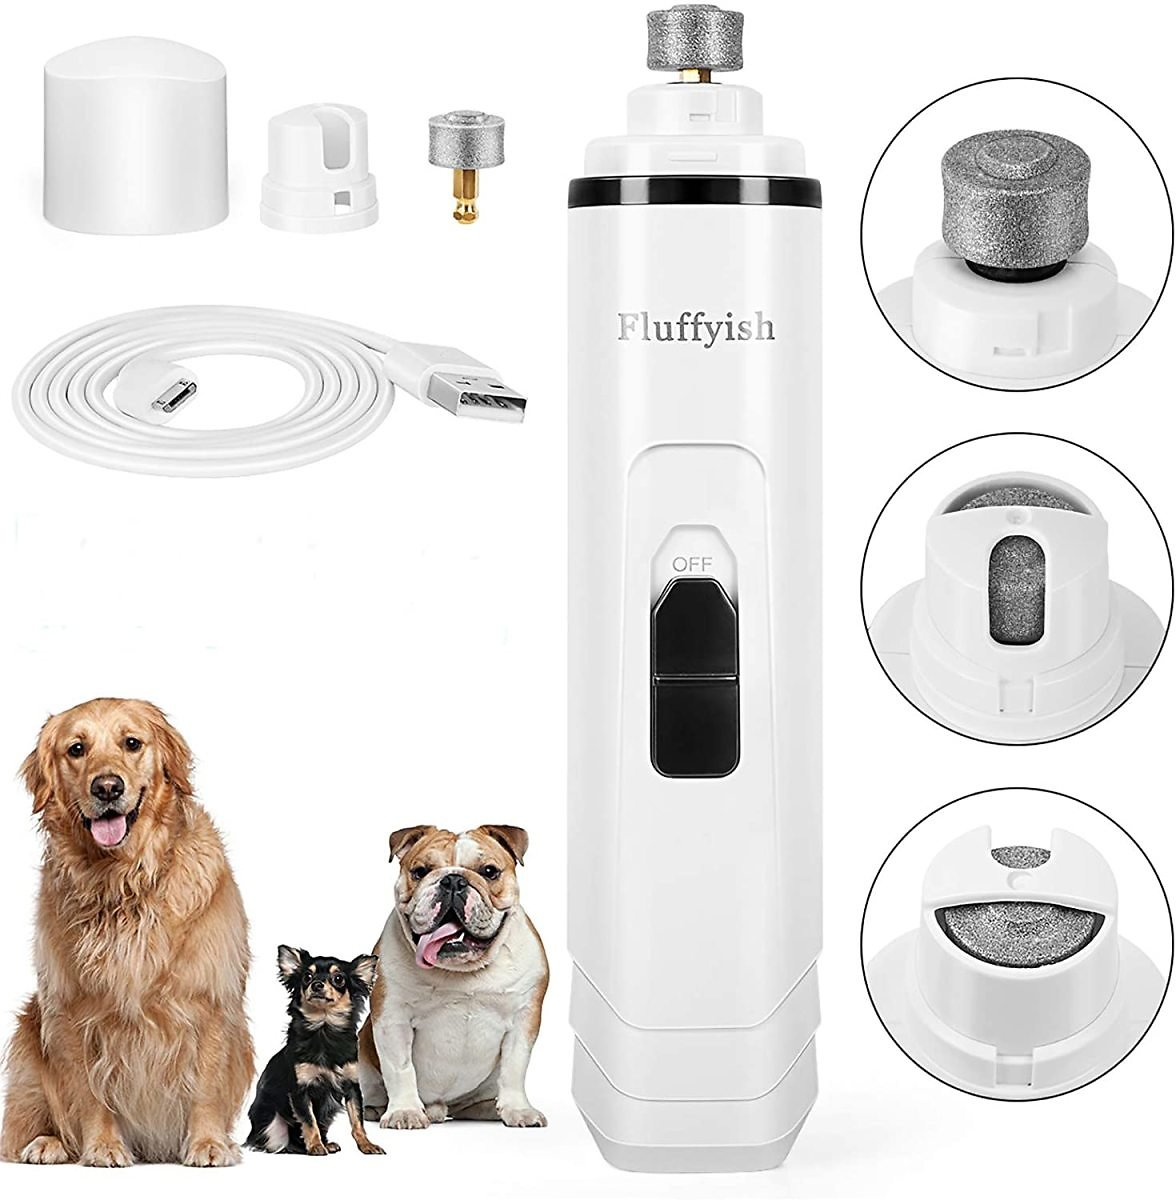 50% Off Rechargeable Dog Nail Grinder with 2-Speed Settings & Long Battery Life